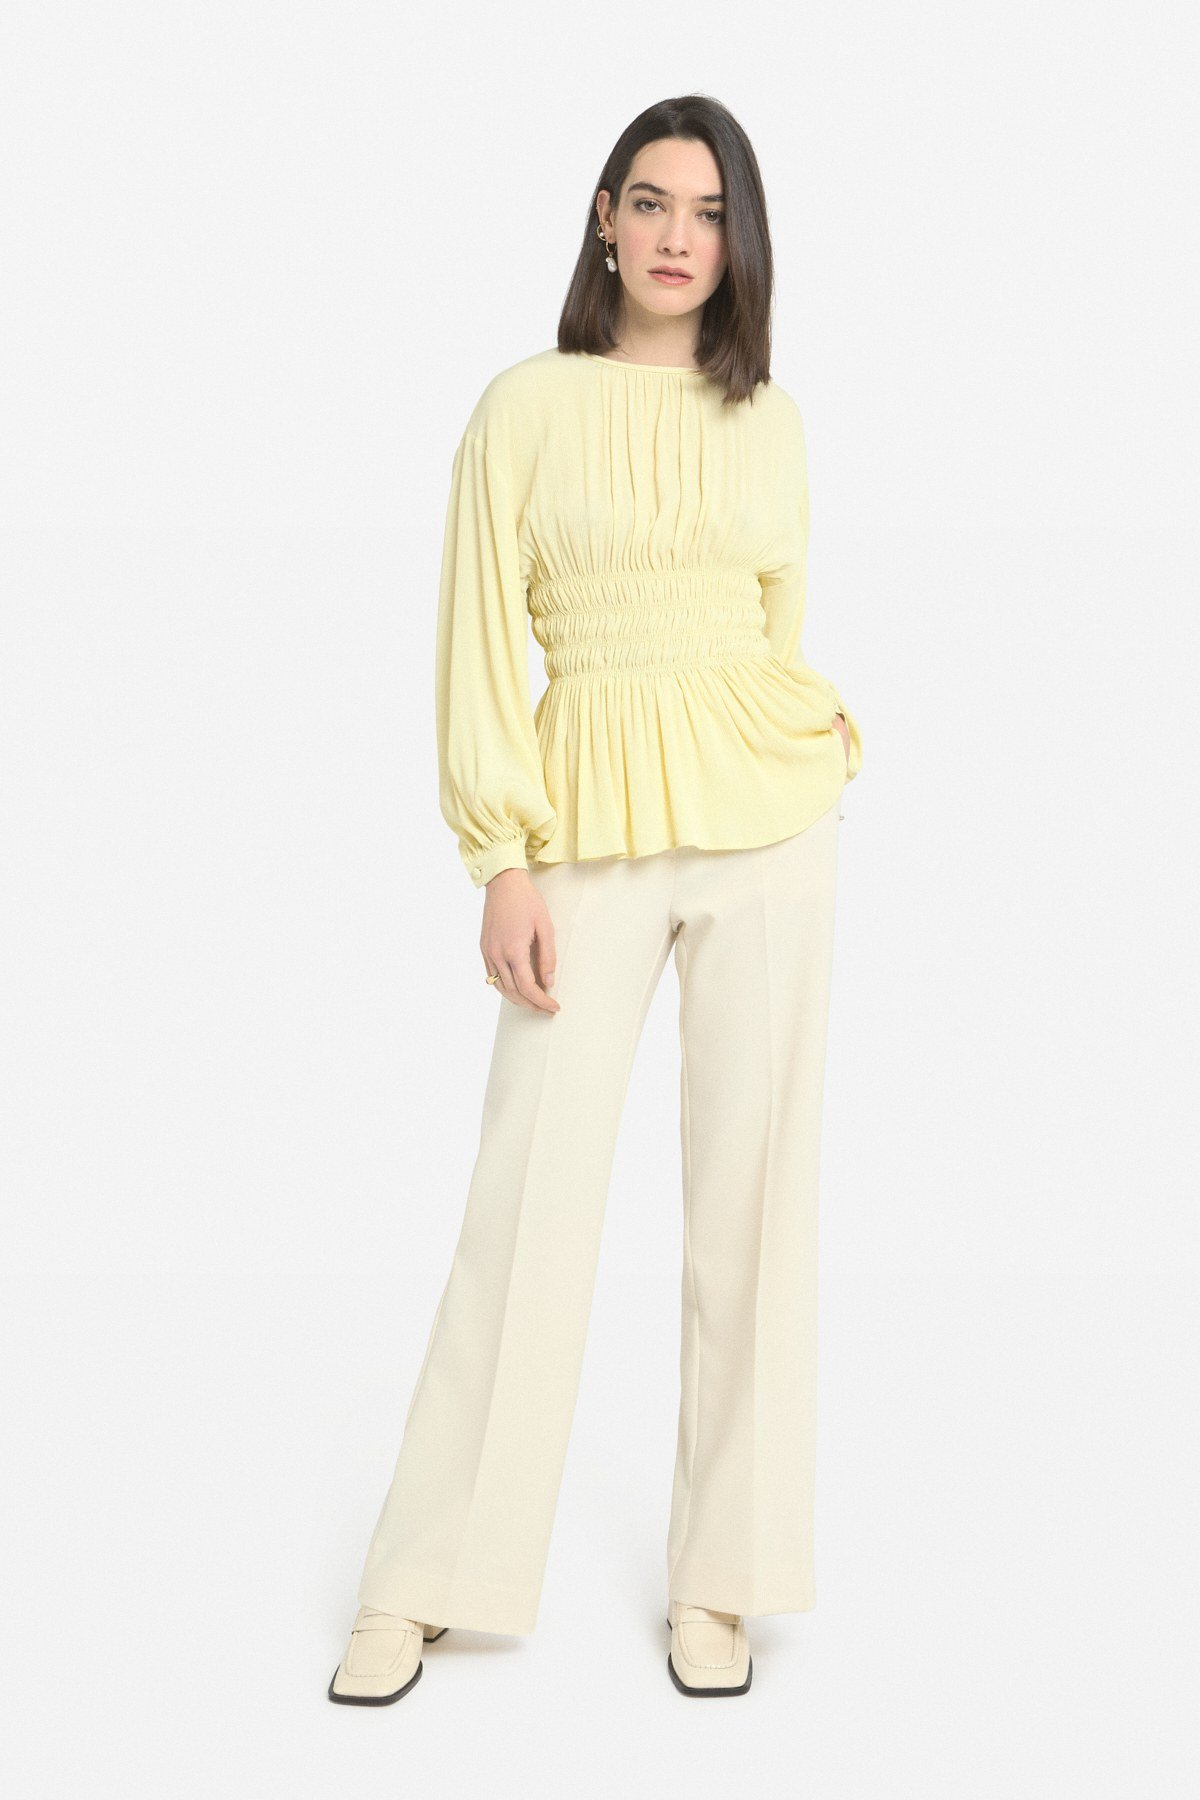 Sweater with maxi elastic band at the waist